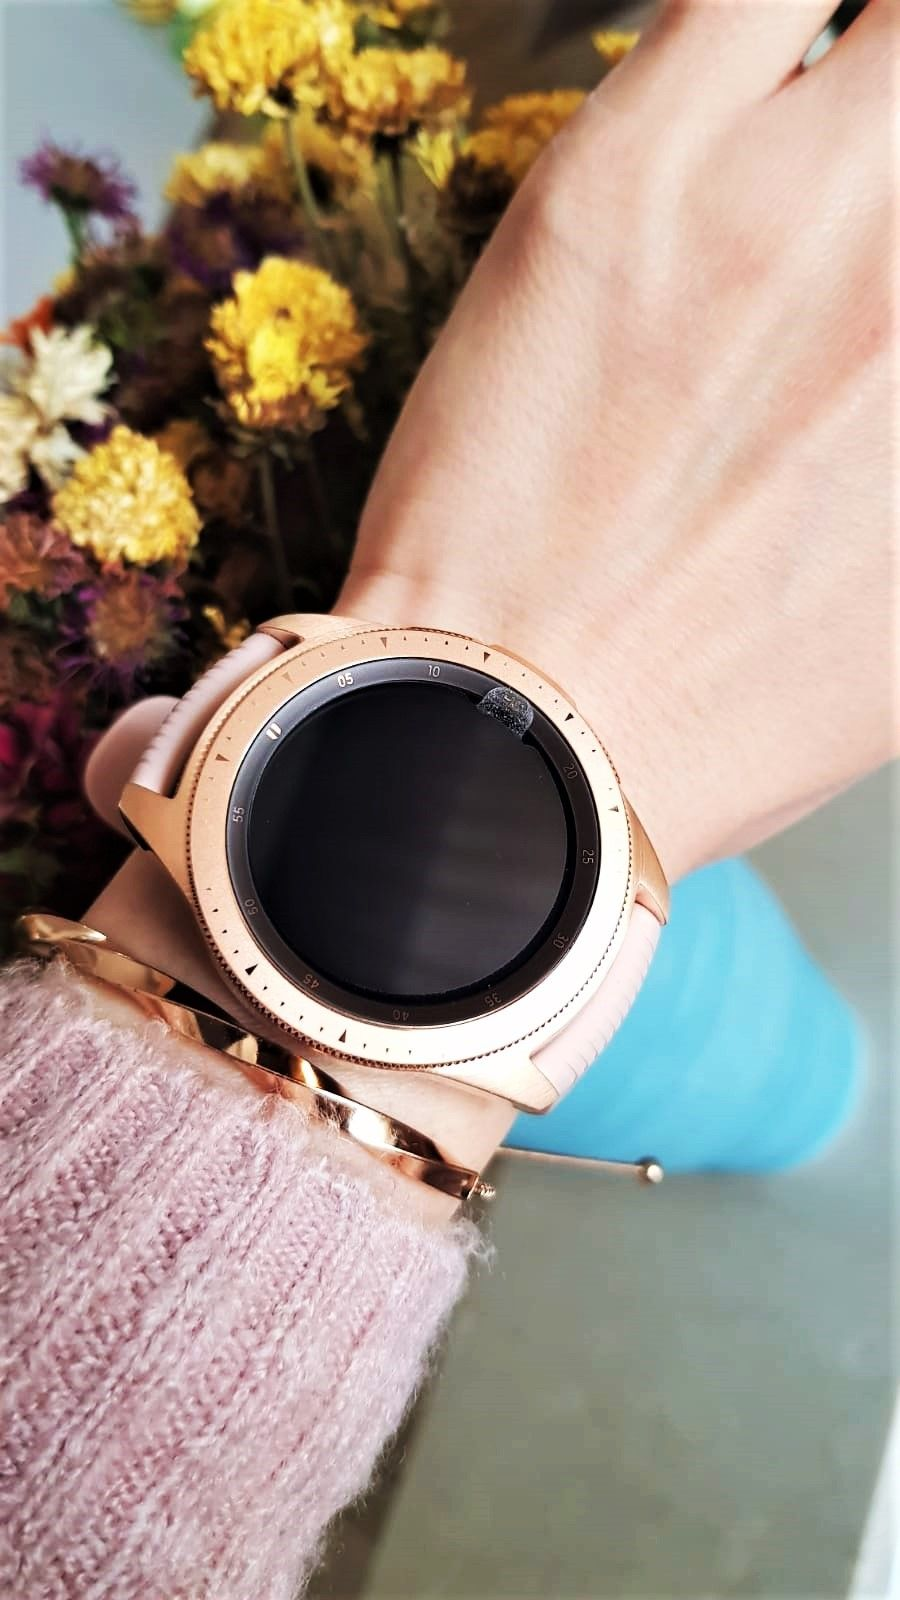 Samsung Galaxy Watch Rose Gold Review I Love My New Gadget